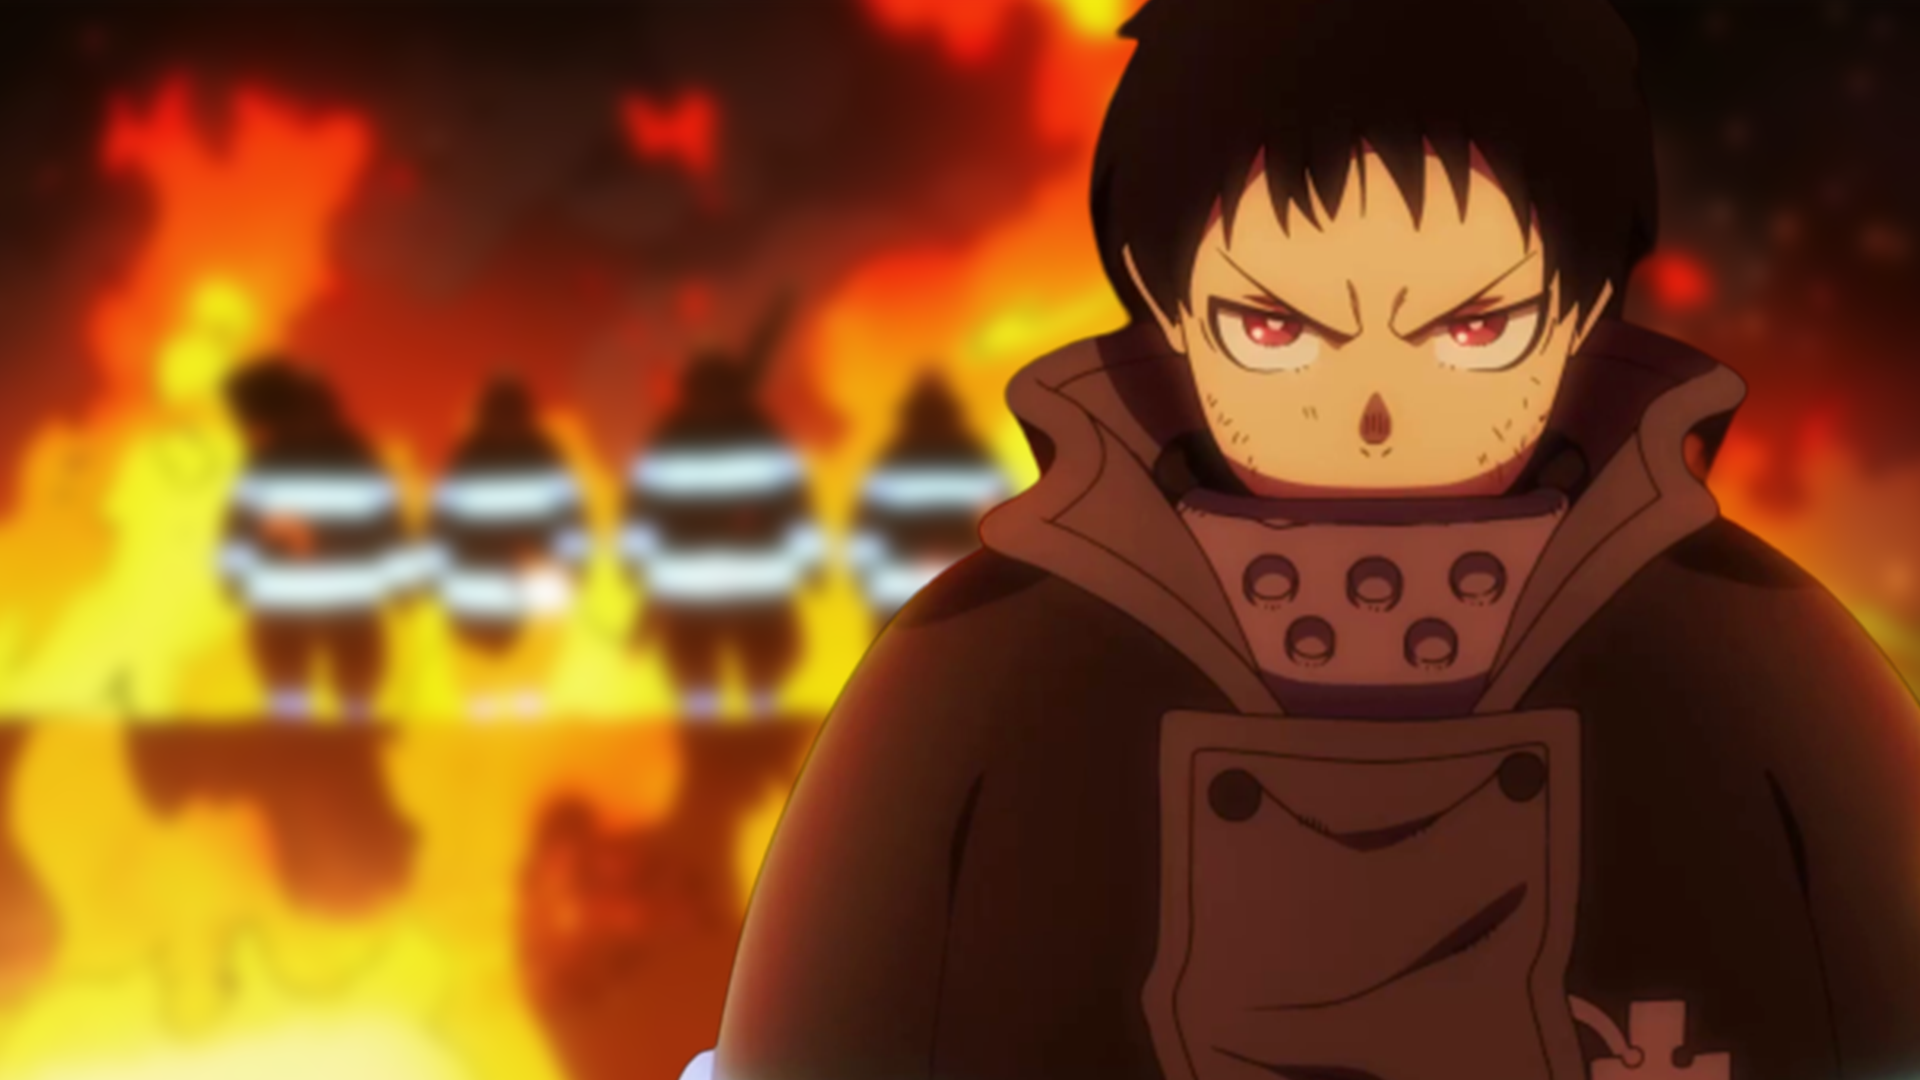 Fire Force Anime Wallpapers Top Free Fire Force Anime Backgrounds Wallpaperaccess